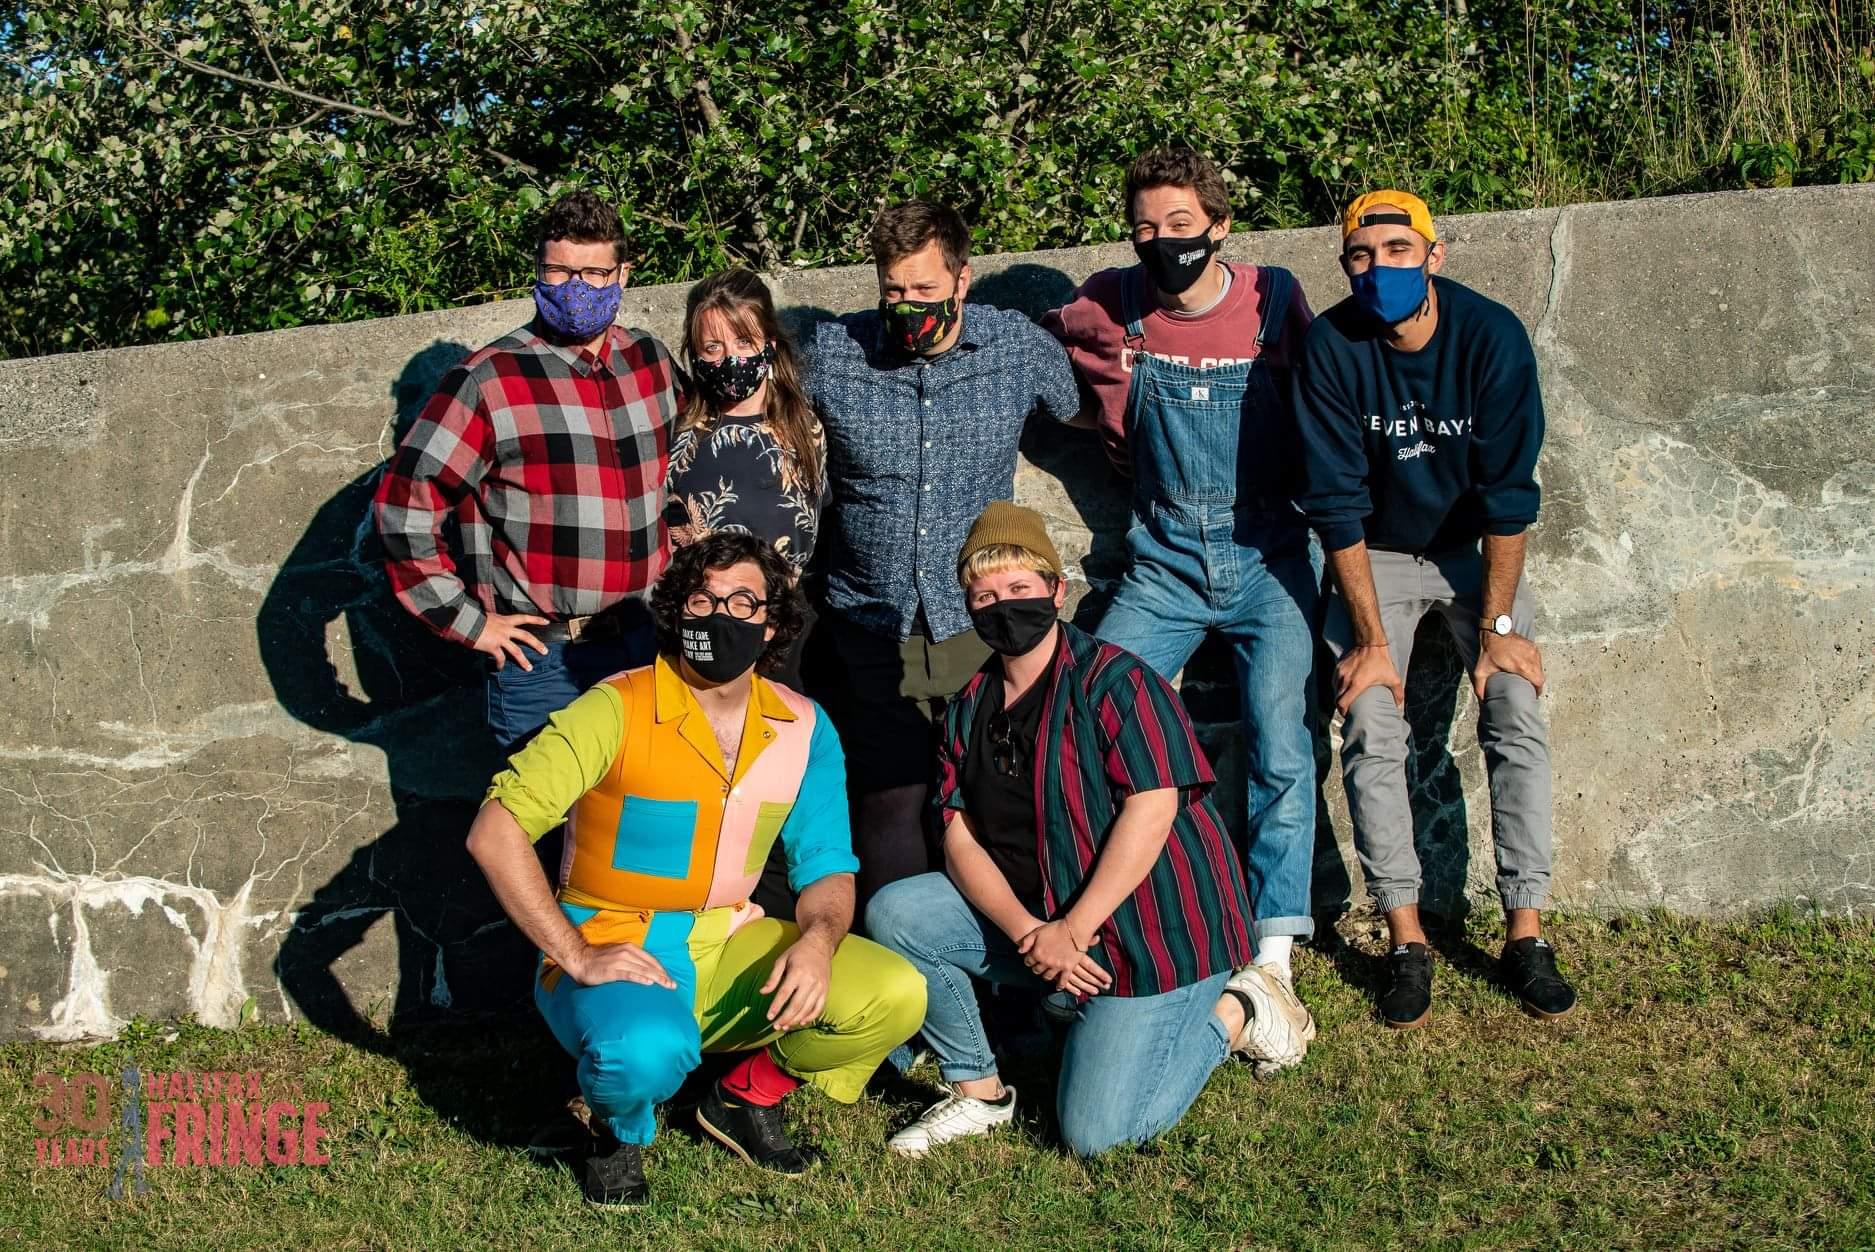 Hello City troupe (with the exception of Beth Poulsen) pose at Shakespeare by the Sea in Point Pleasant Park on Saturday, September 12, 2020. The troupe had performed an improv show at the 30th Halifax Fringe Festival during the pandemic.